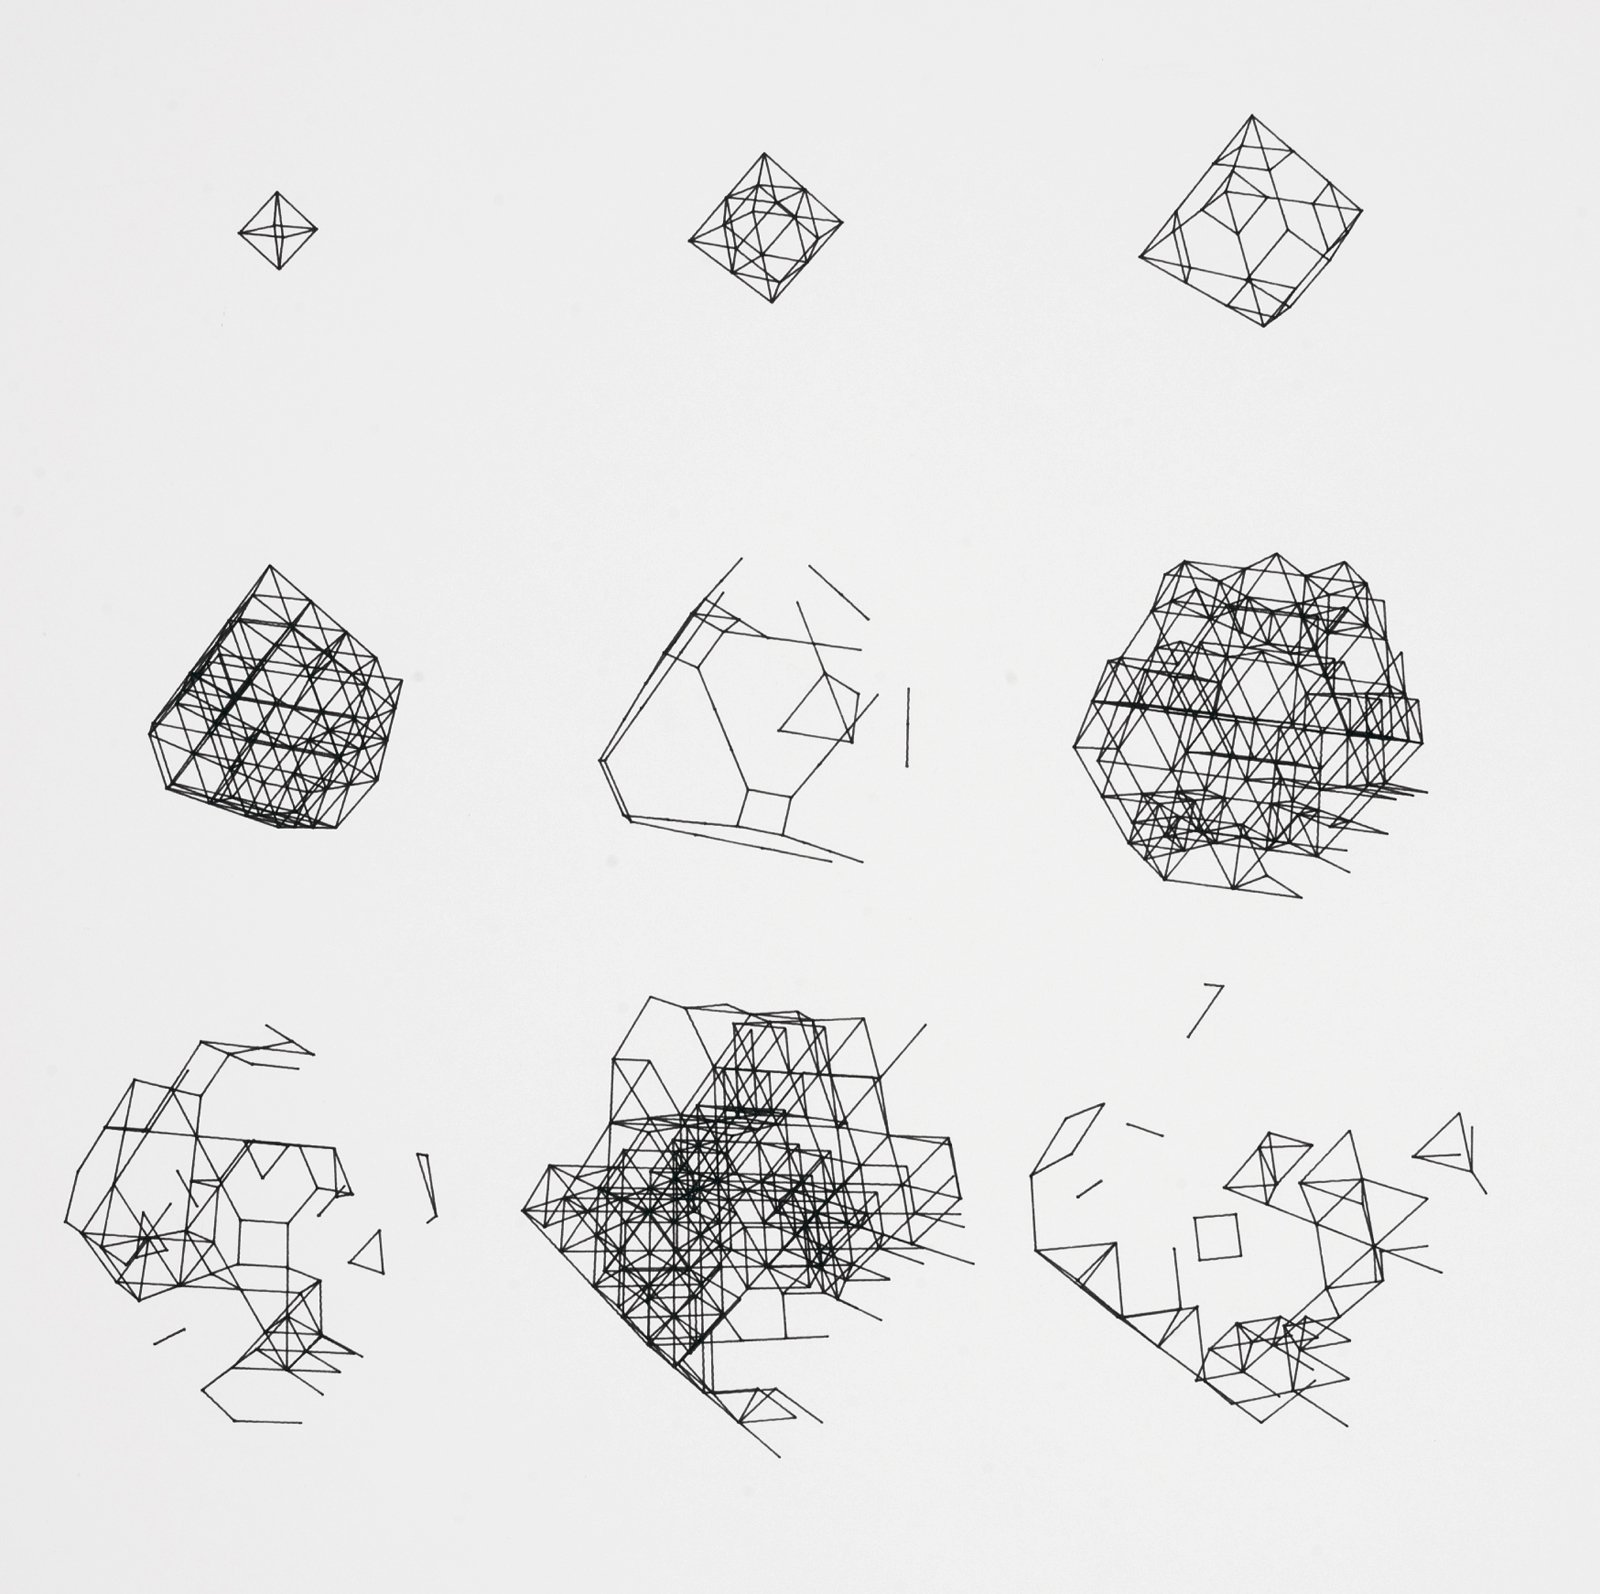 """Paul Brown's plotter drawing """"BIGDIM / 0 10 10 0 0 0 / 200,120 / 11,969"""" is an intricate progression and deconstruction of geometric shapes. 1979, from Digital Pioneers.  A Look Inside V&A Pattern by Jordan Kushins"""